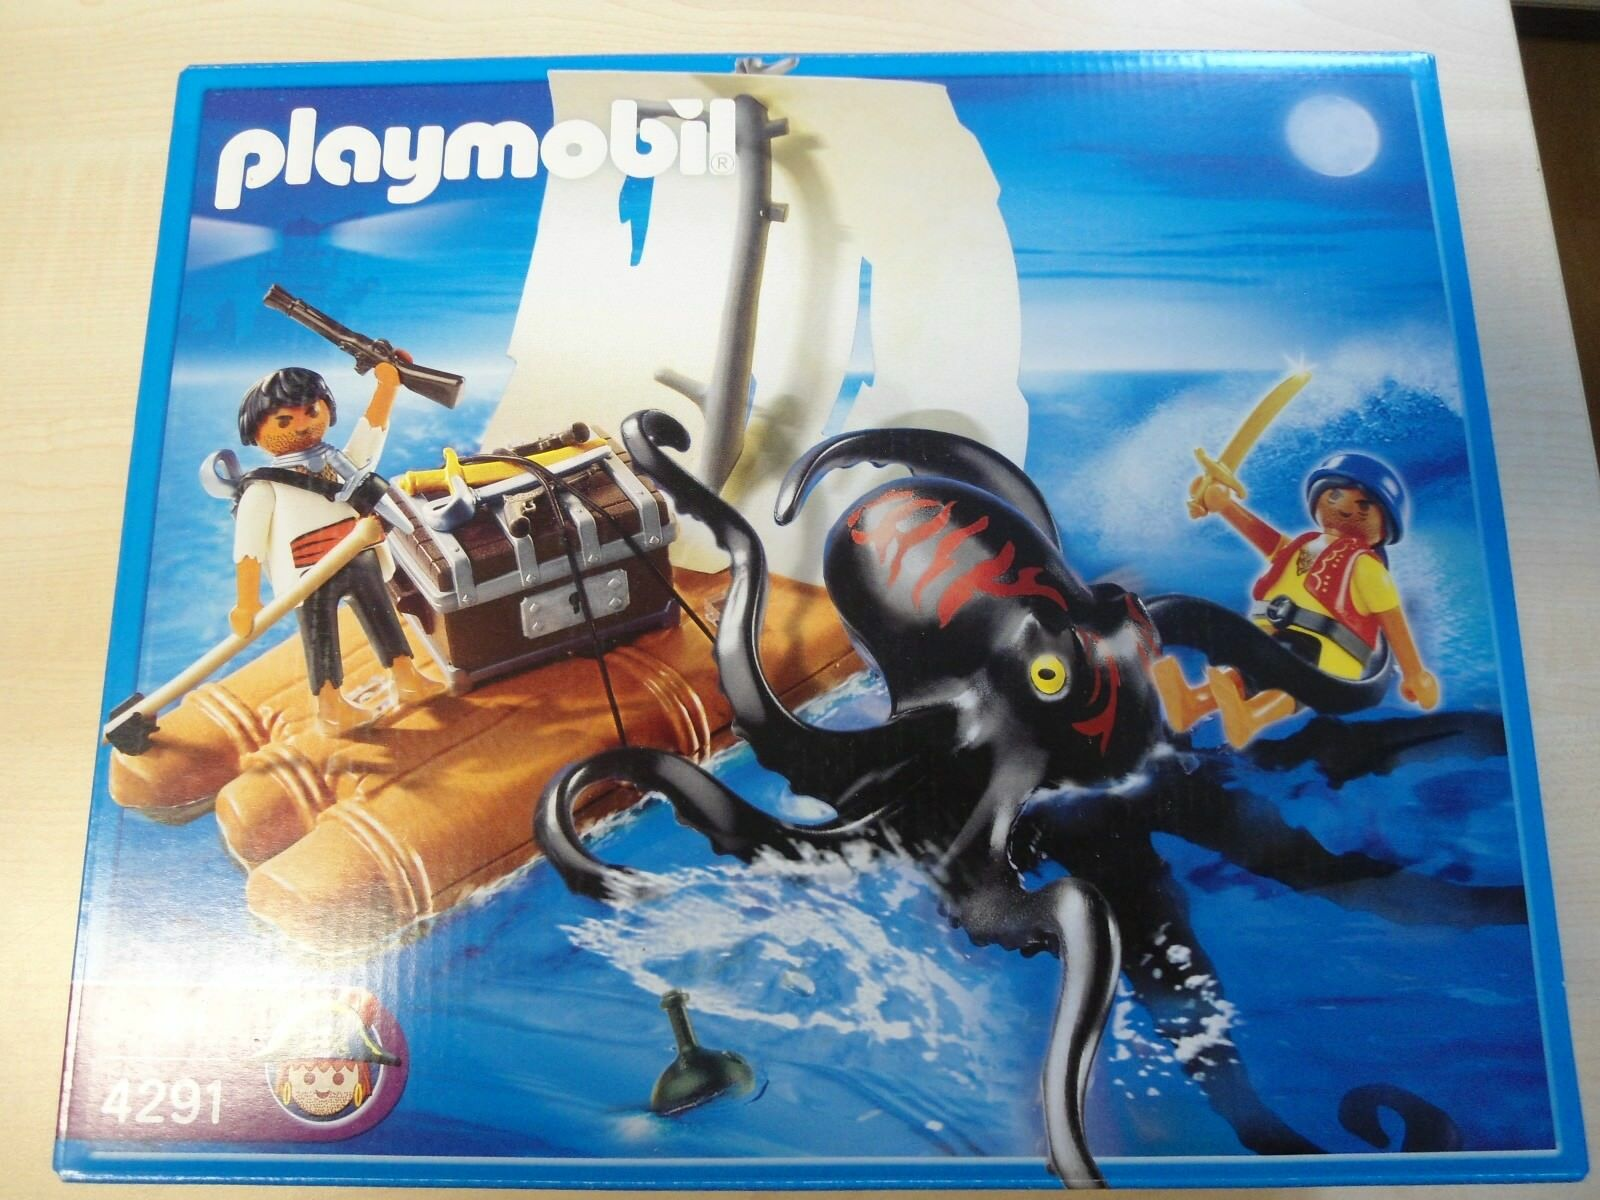 PLAYMOBIL Set 4291